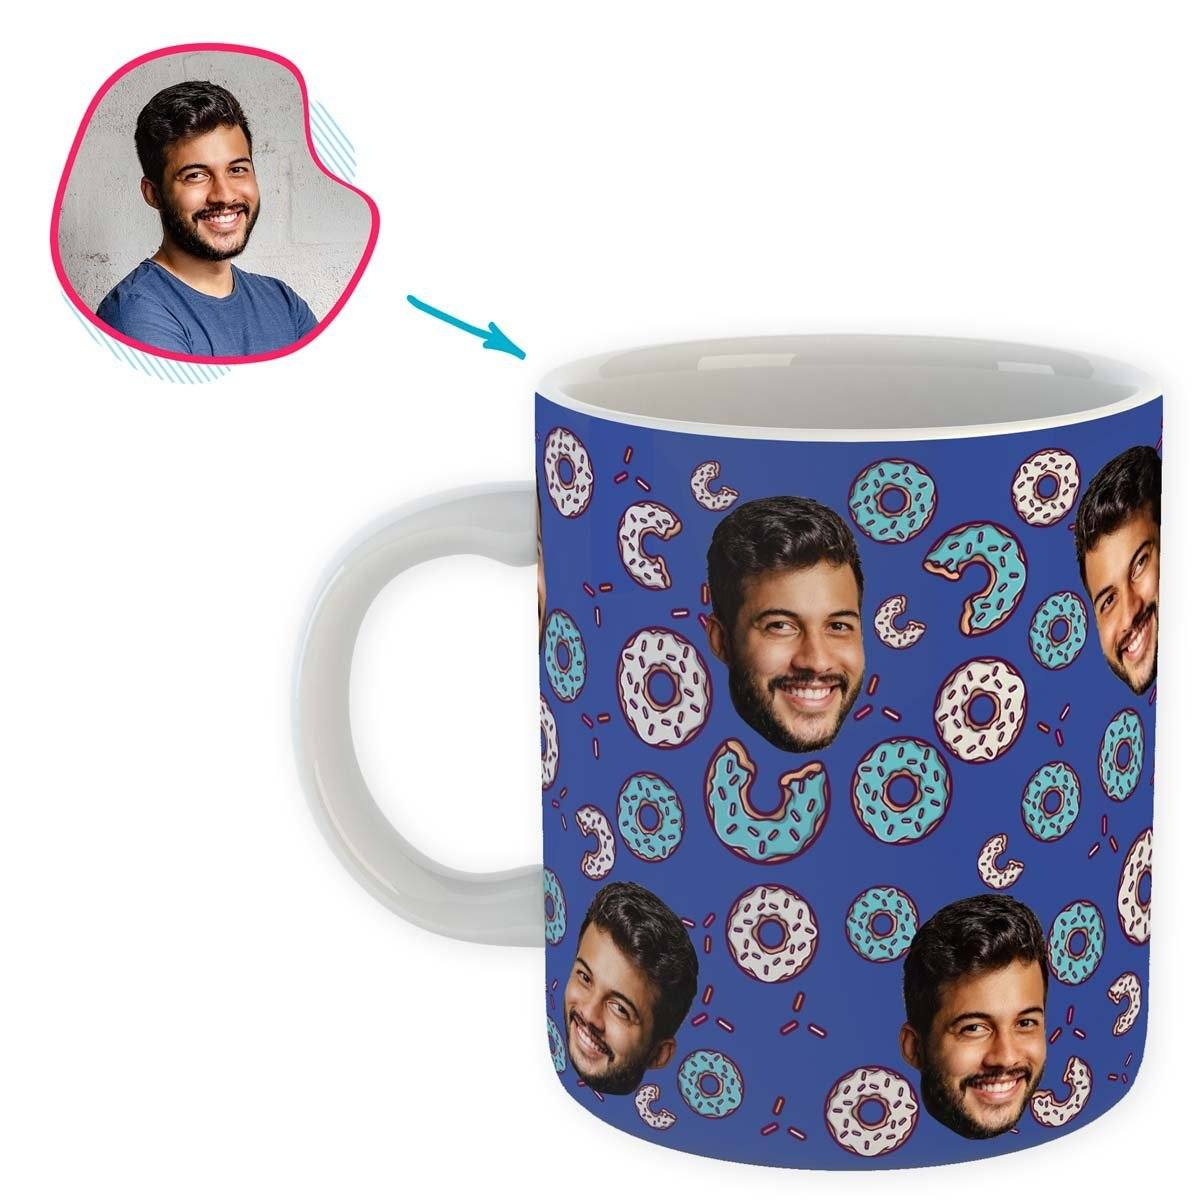 darkblue Donuts mug personalized with photo of face printed on it